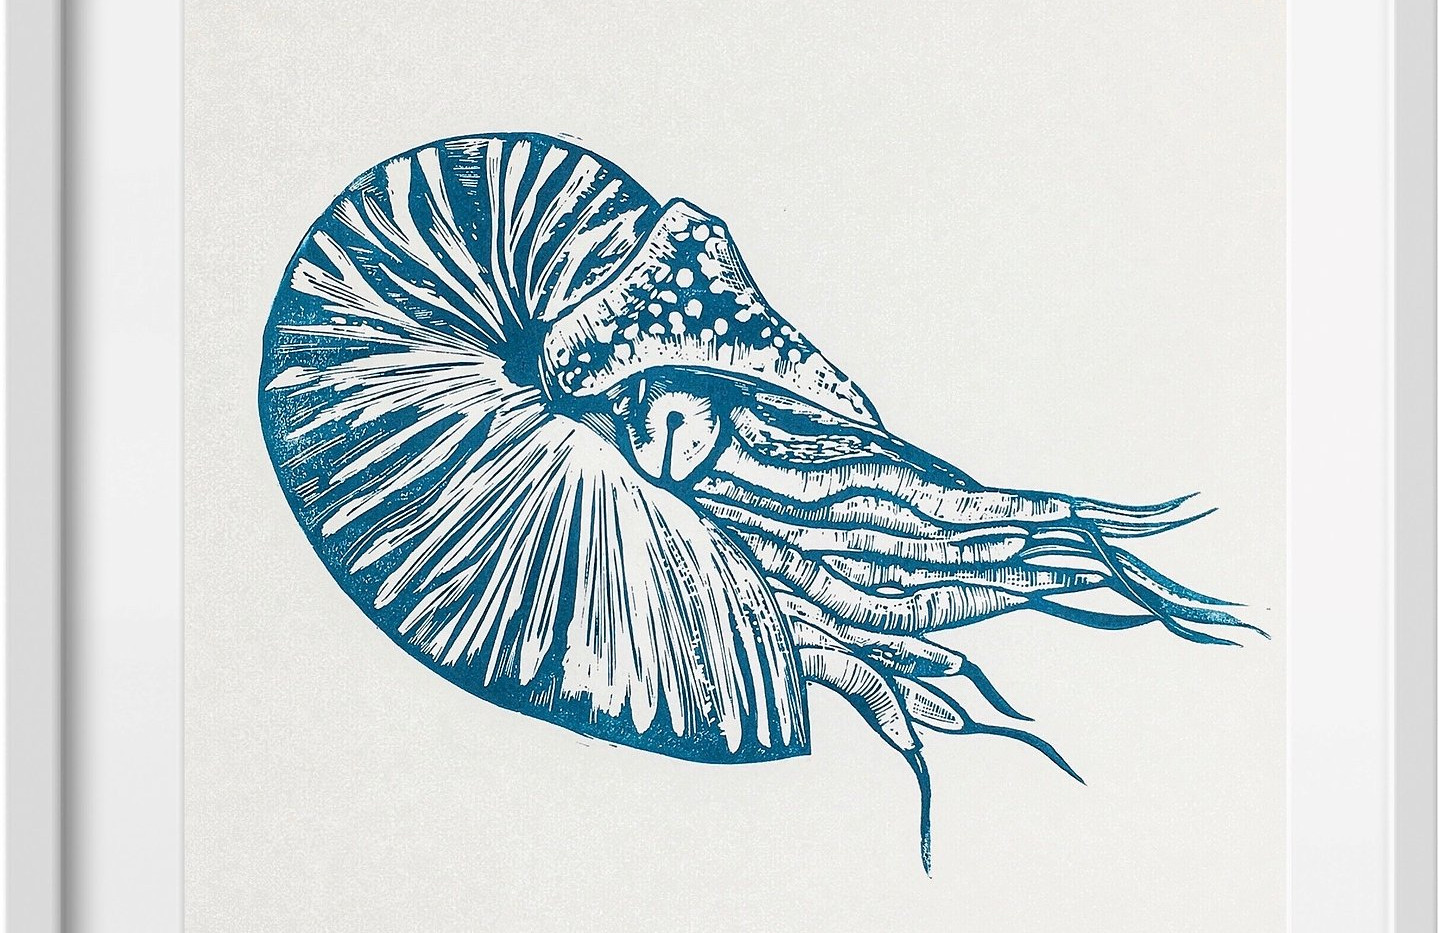 Amy Cundall - Framed linocut Nautilus